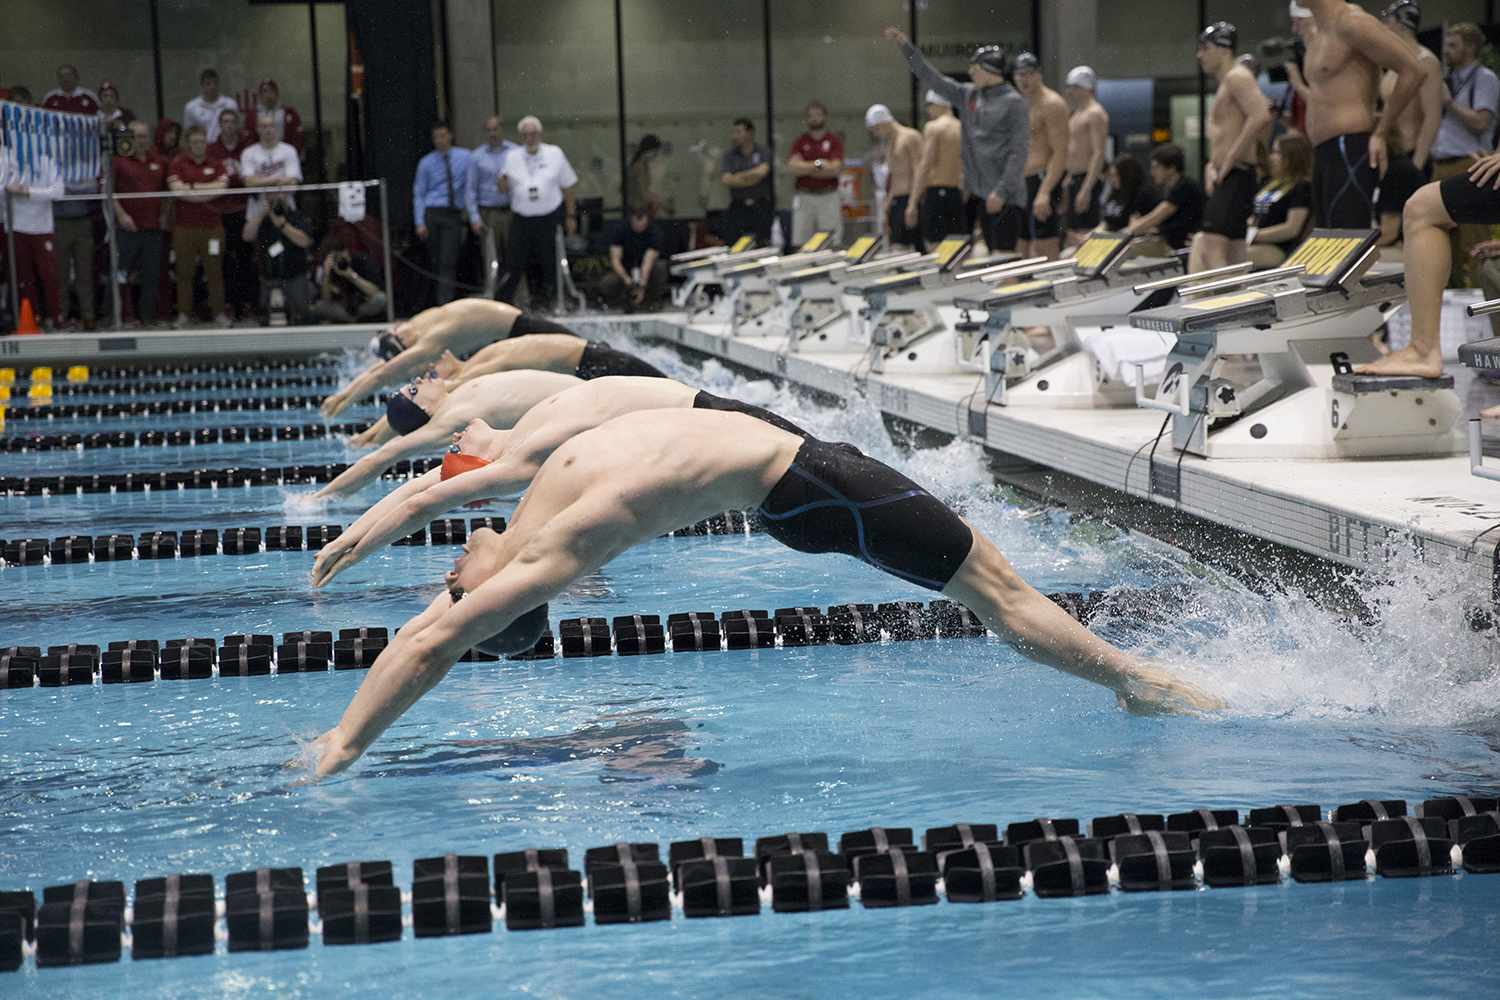 Swimmers+diving+in+on+Thursday%2C+February+28%2C+2019.+The+Big+Ten+Men%27s+Swimming+and+Diving+Championship+was+held+at+the+University+of+Iowa+Aquatic+Center.+